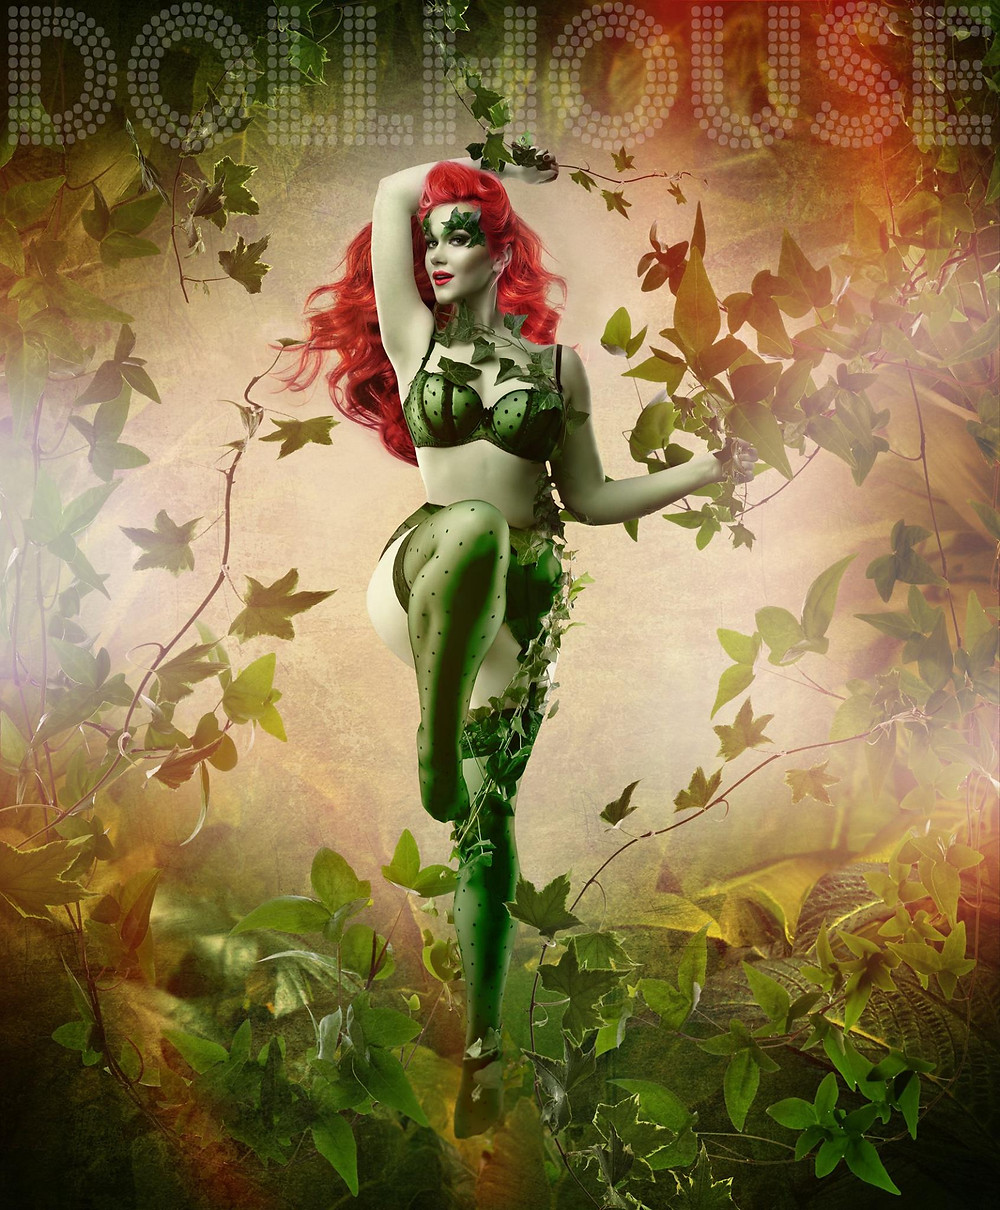 Poison Ivy Batman Cosplay | By Chrissy Sparks at DOLLHOUSE